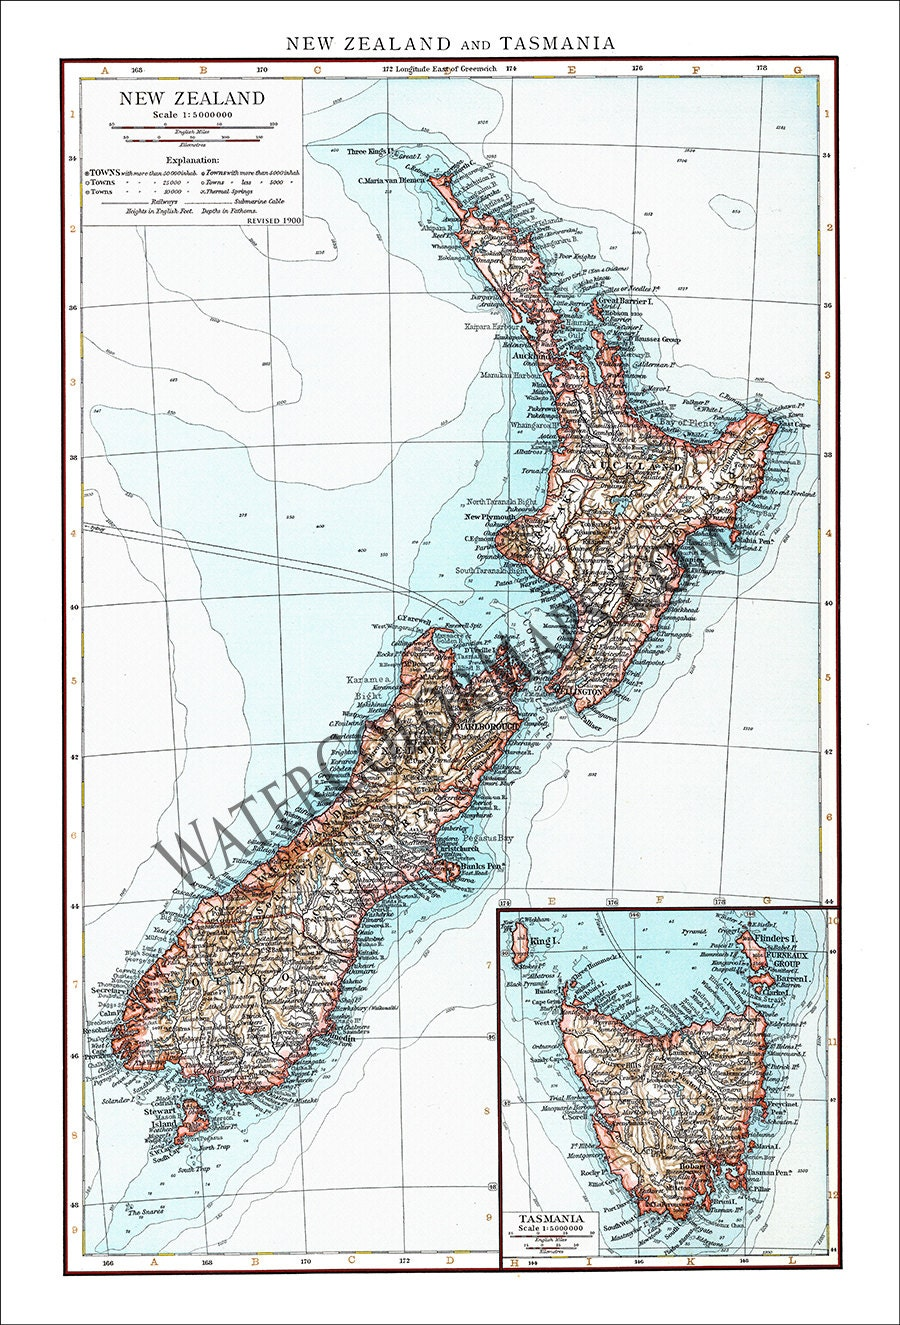 new zealand map new zealand auckland map of new zealand australia map vintage map antique map world map maps of the world